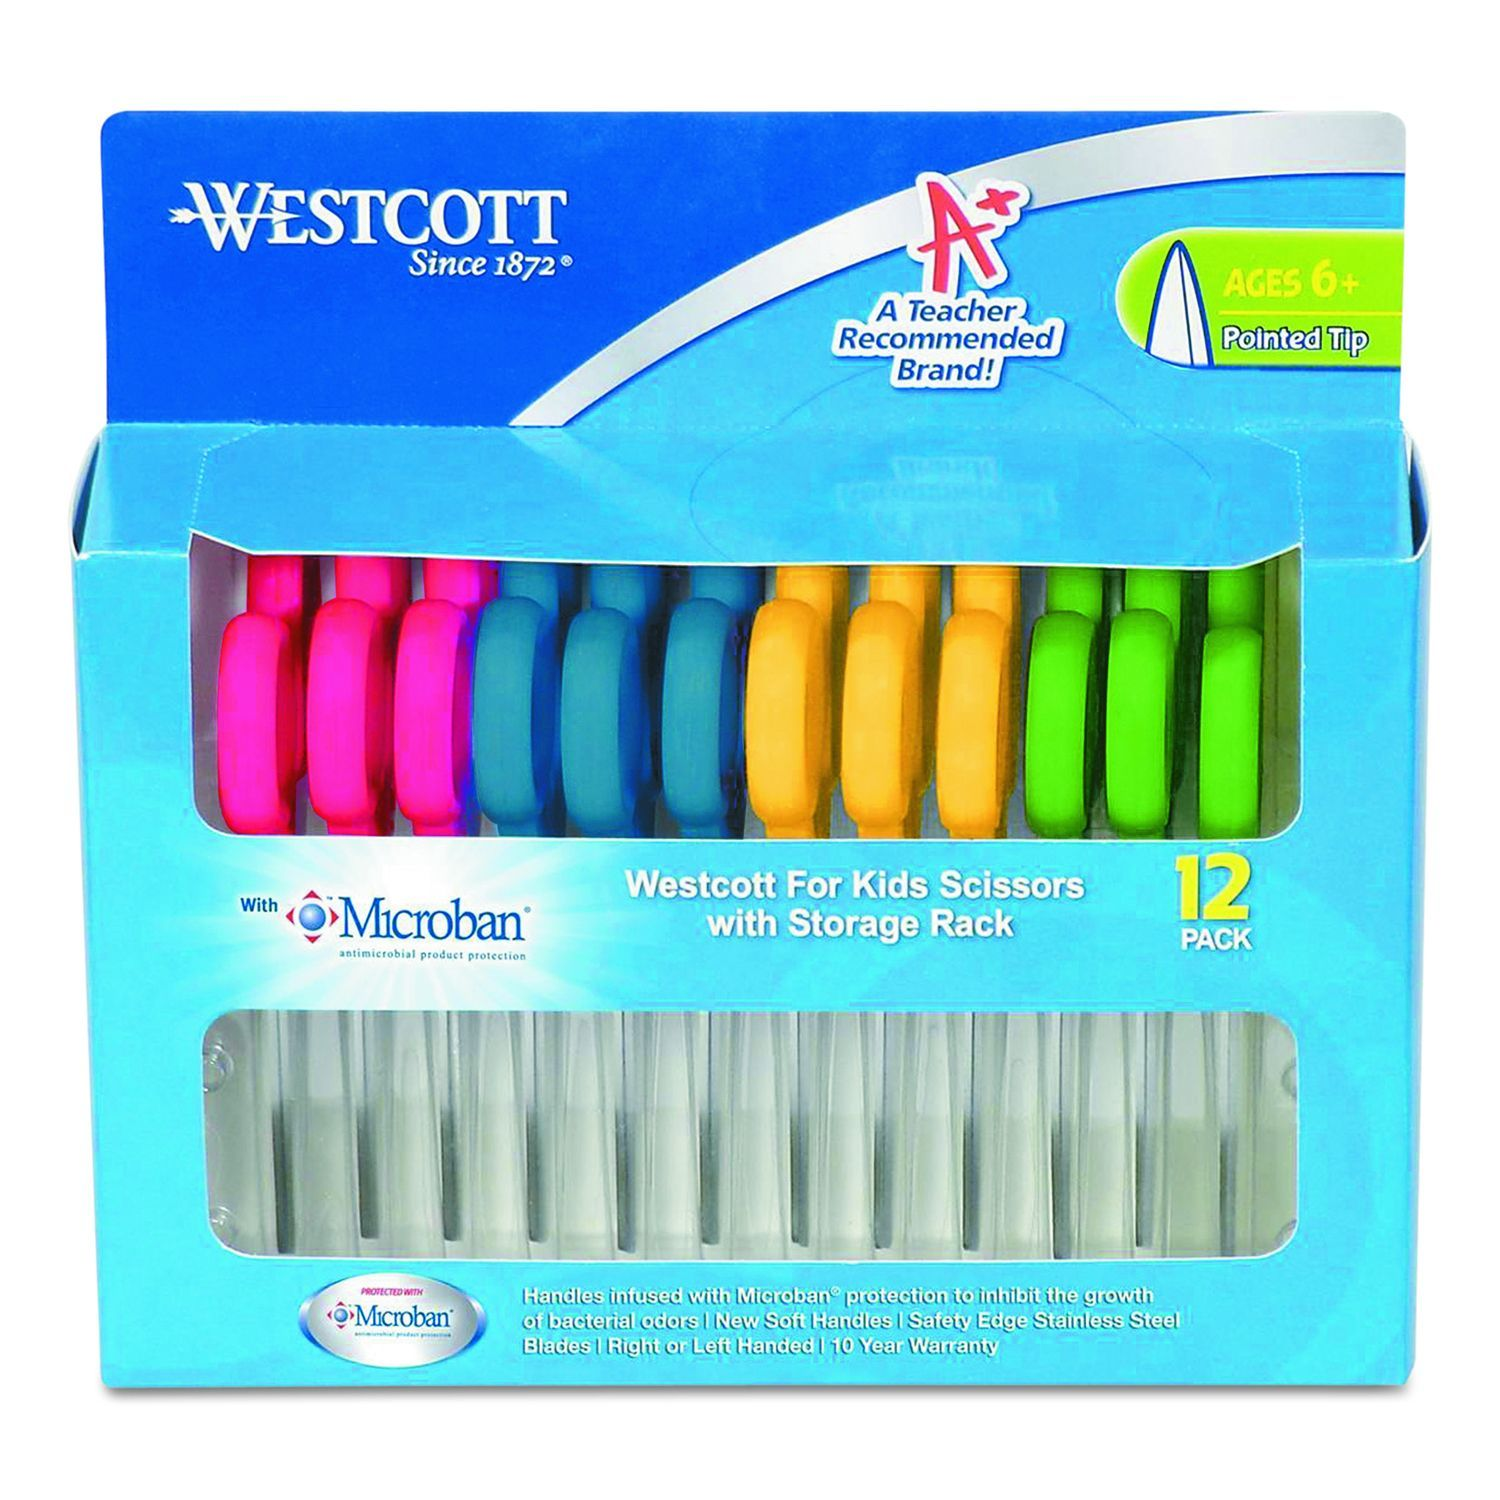 Westcott Kids Scissors with Antimicrobial Protection